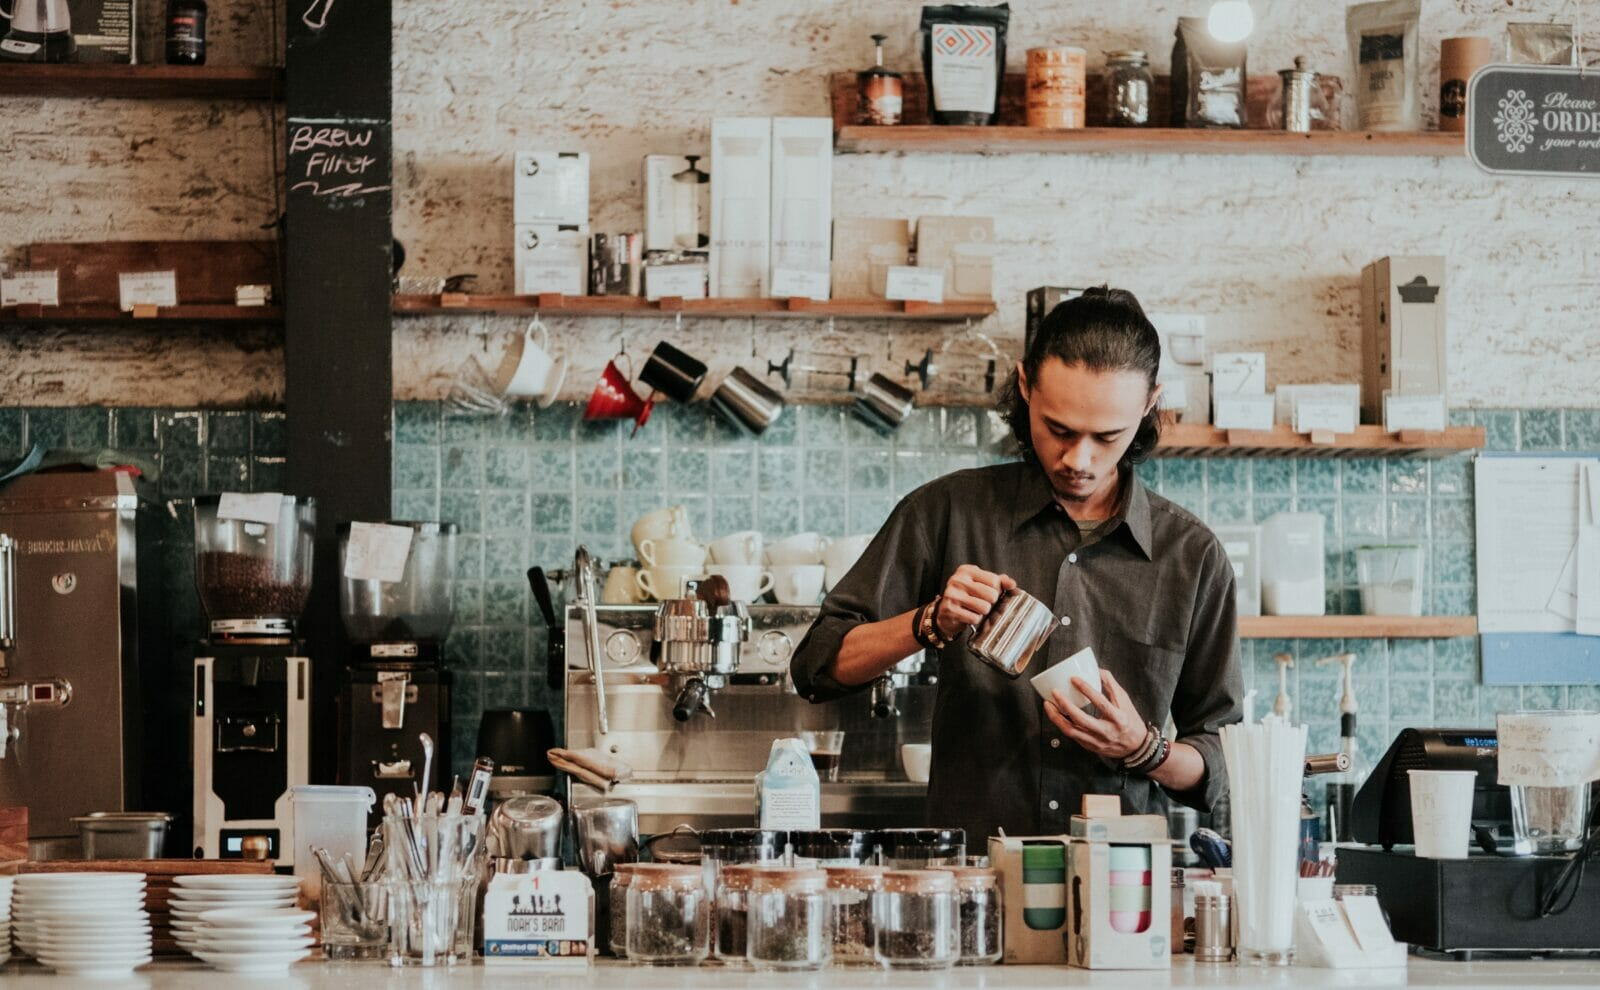 A local man pouring coffee as a barista